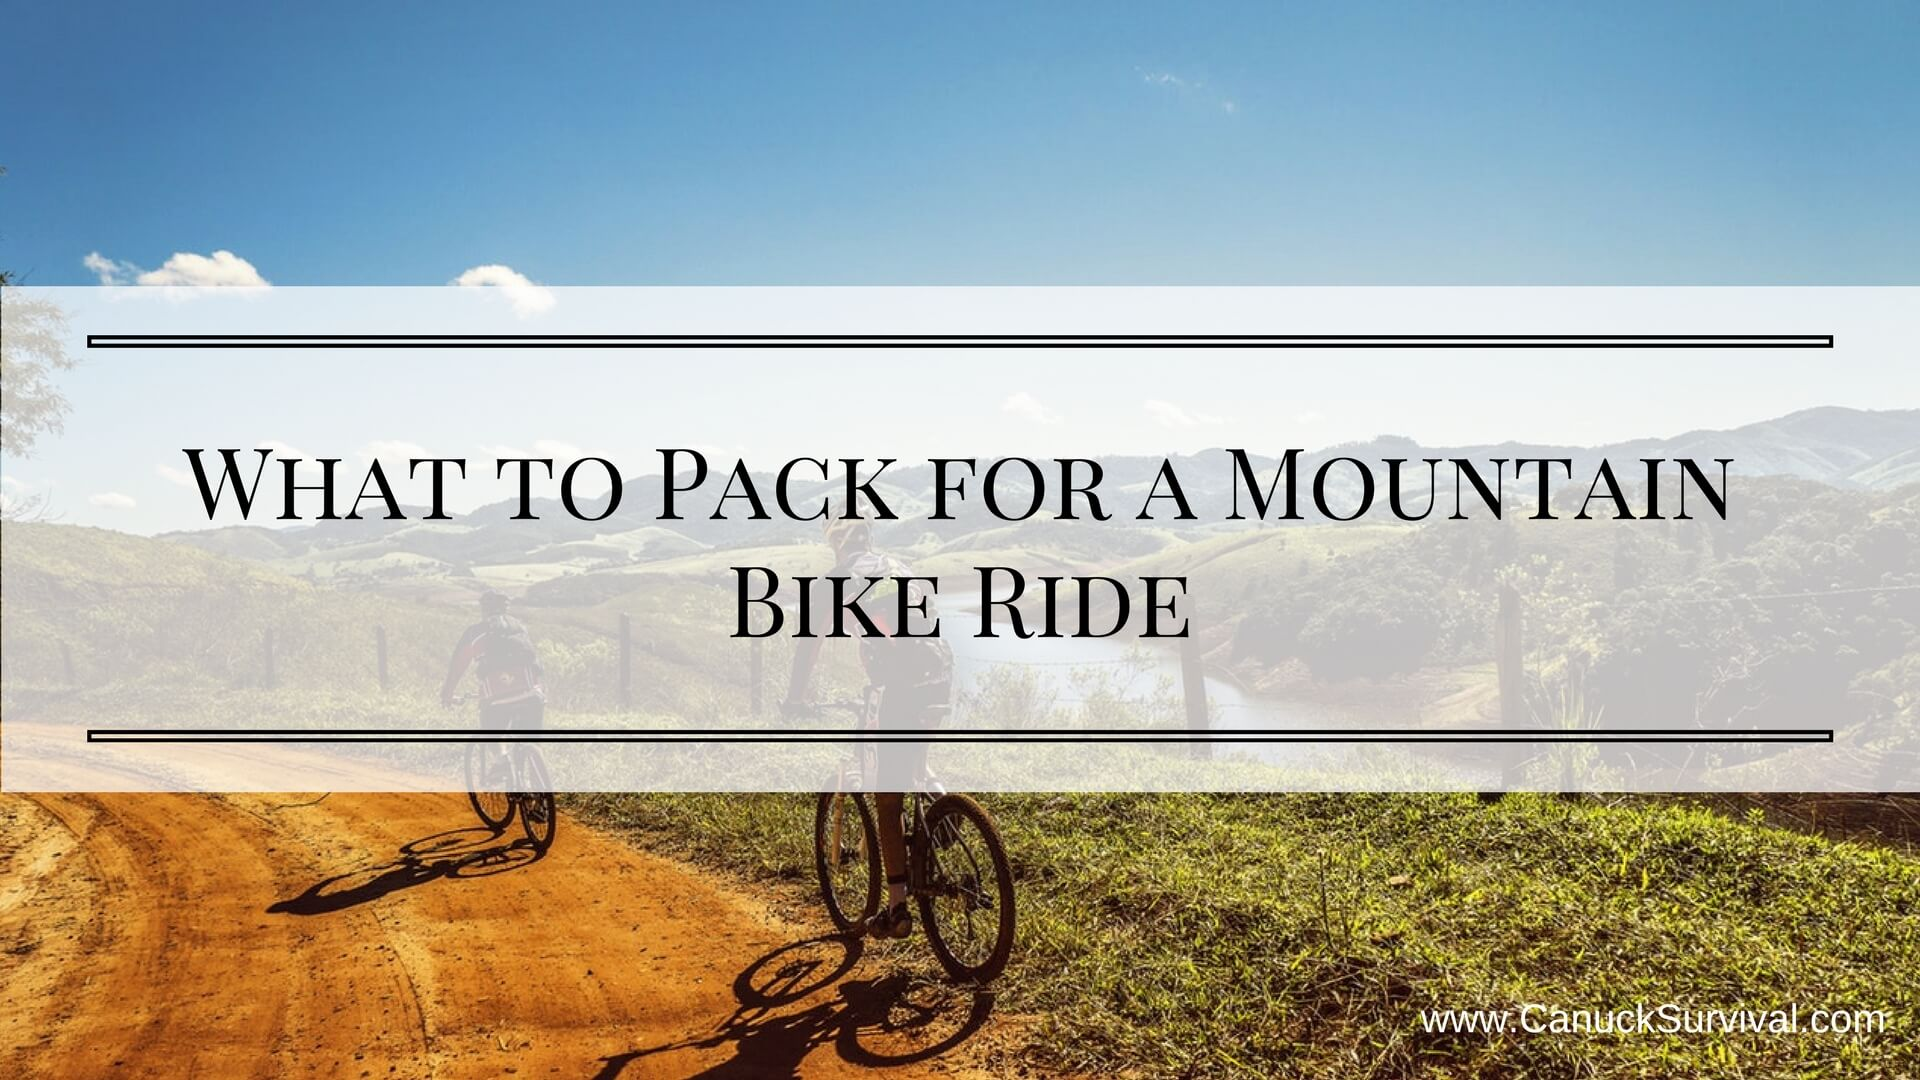 What to Pack for a Mountain Bike Ride